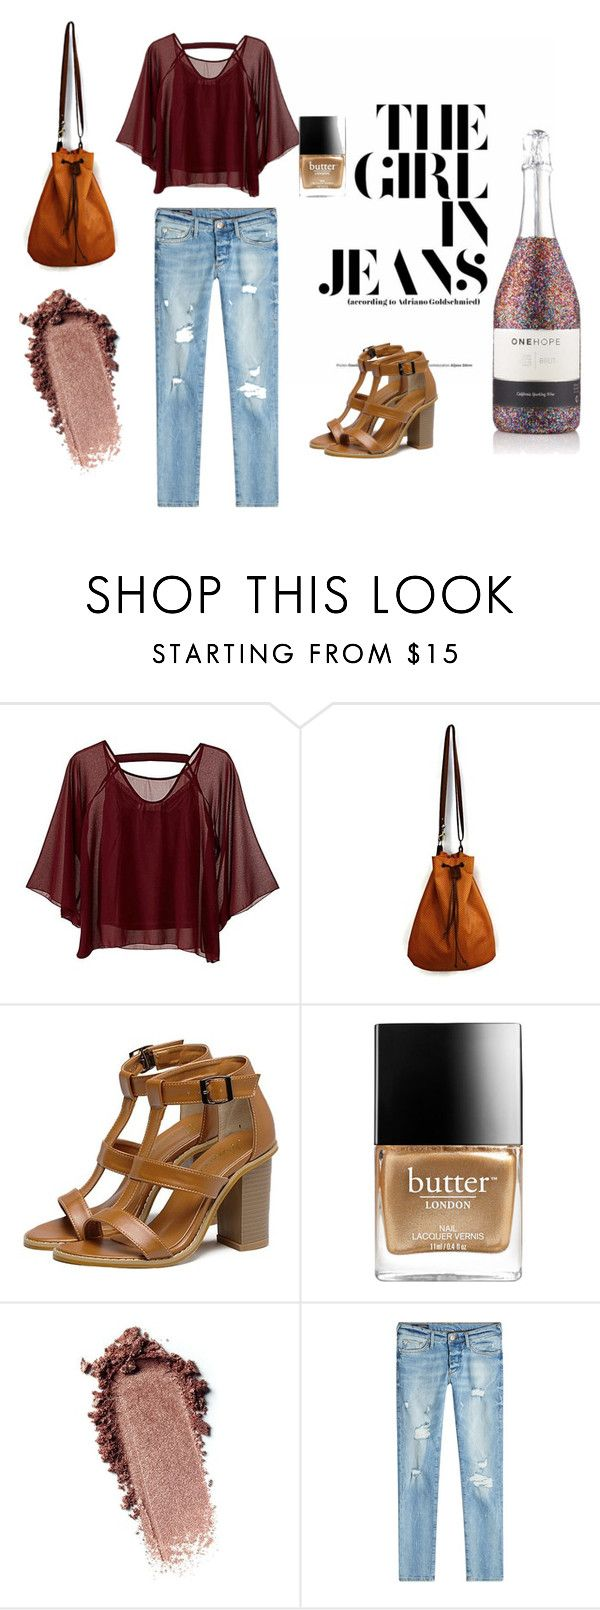 The girl in jeans by maslindadesigns on Polyvore featuring Traffic People, True Religion and Butter London